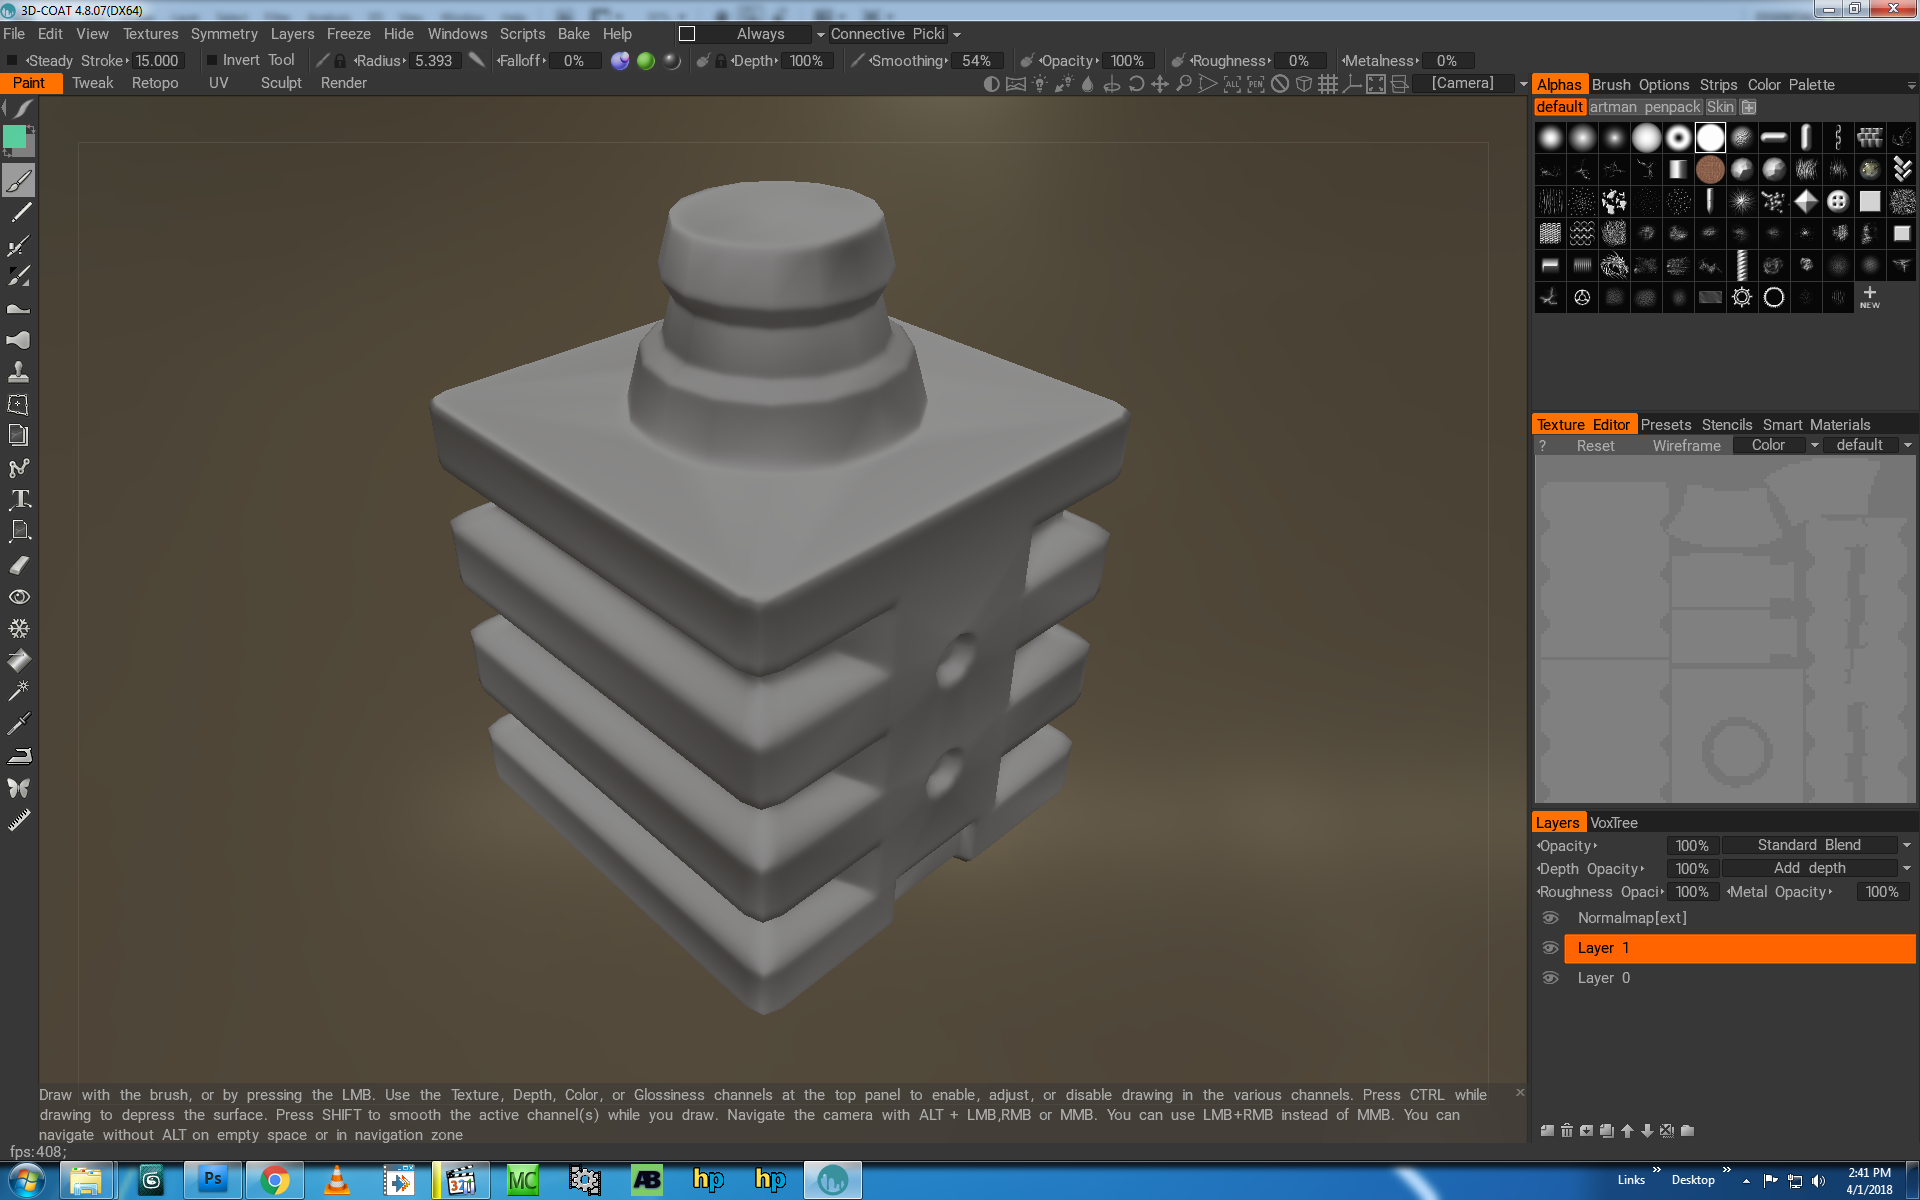 Normal map tangent basis issues  - 3DCoat - 3D Coat Forums